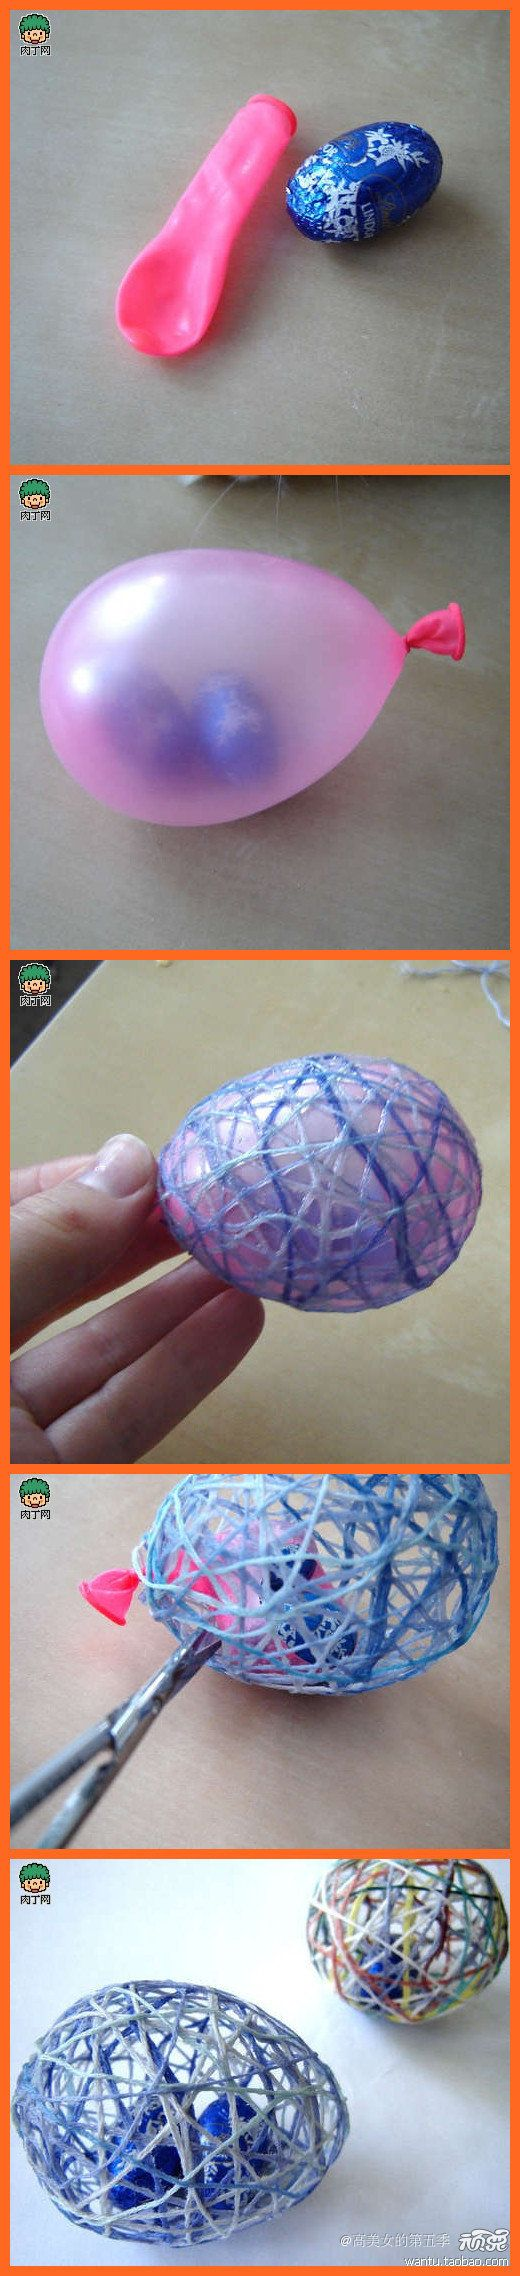 How to make a neat egg with a surprise inside. Fun!